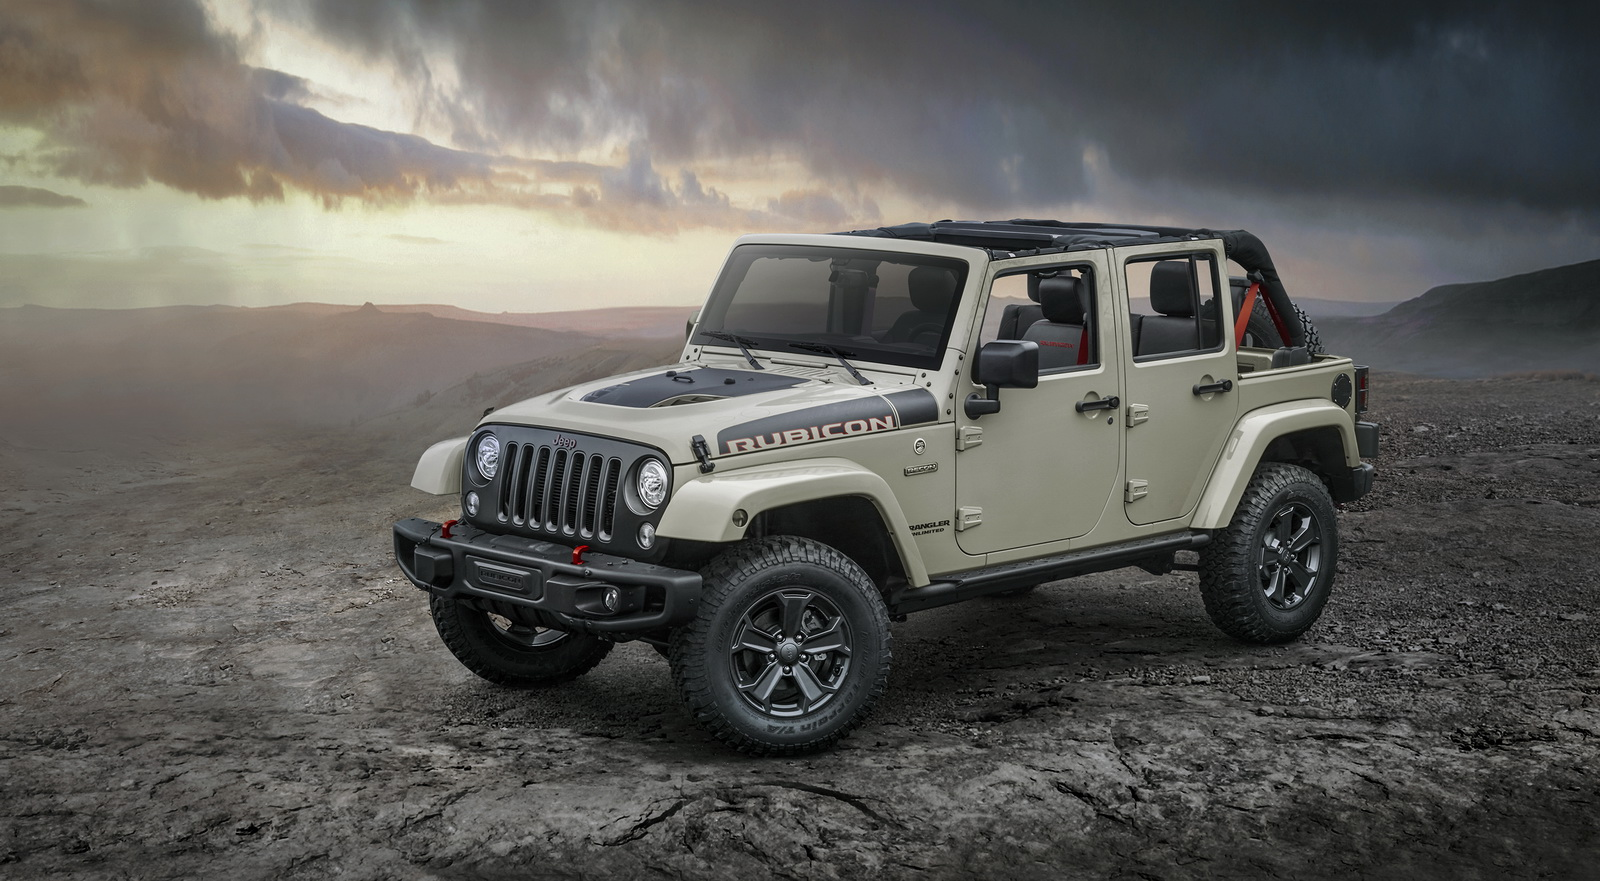 Jeep Wrangler Rubicon Recon Edition Launched In The UK ...